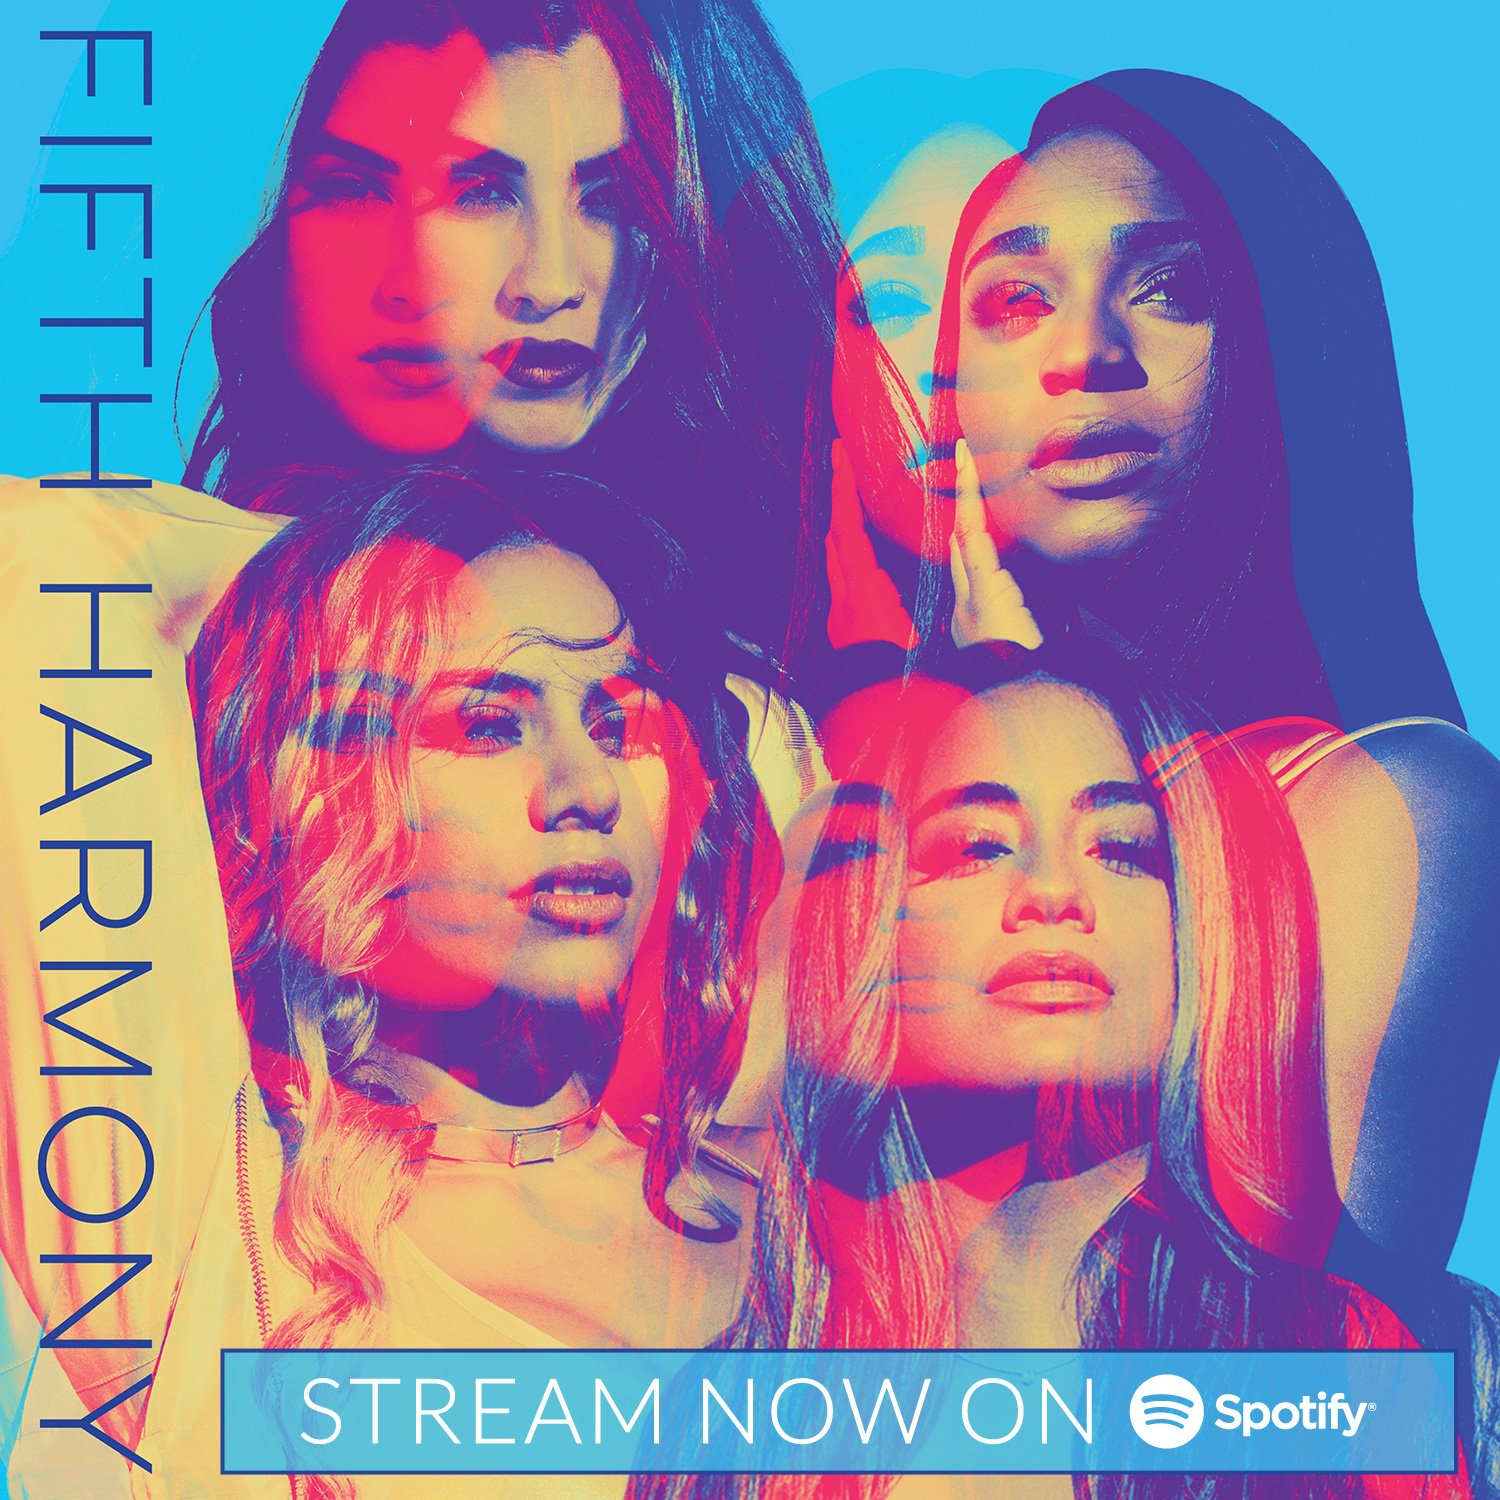 One taste and you'll want it �� Listen to #FifthHarmony on @Spotify: https://t.co/GyEoejye4D https://t.co/K898nWyktc